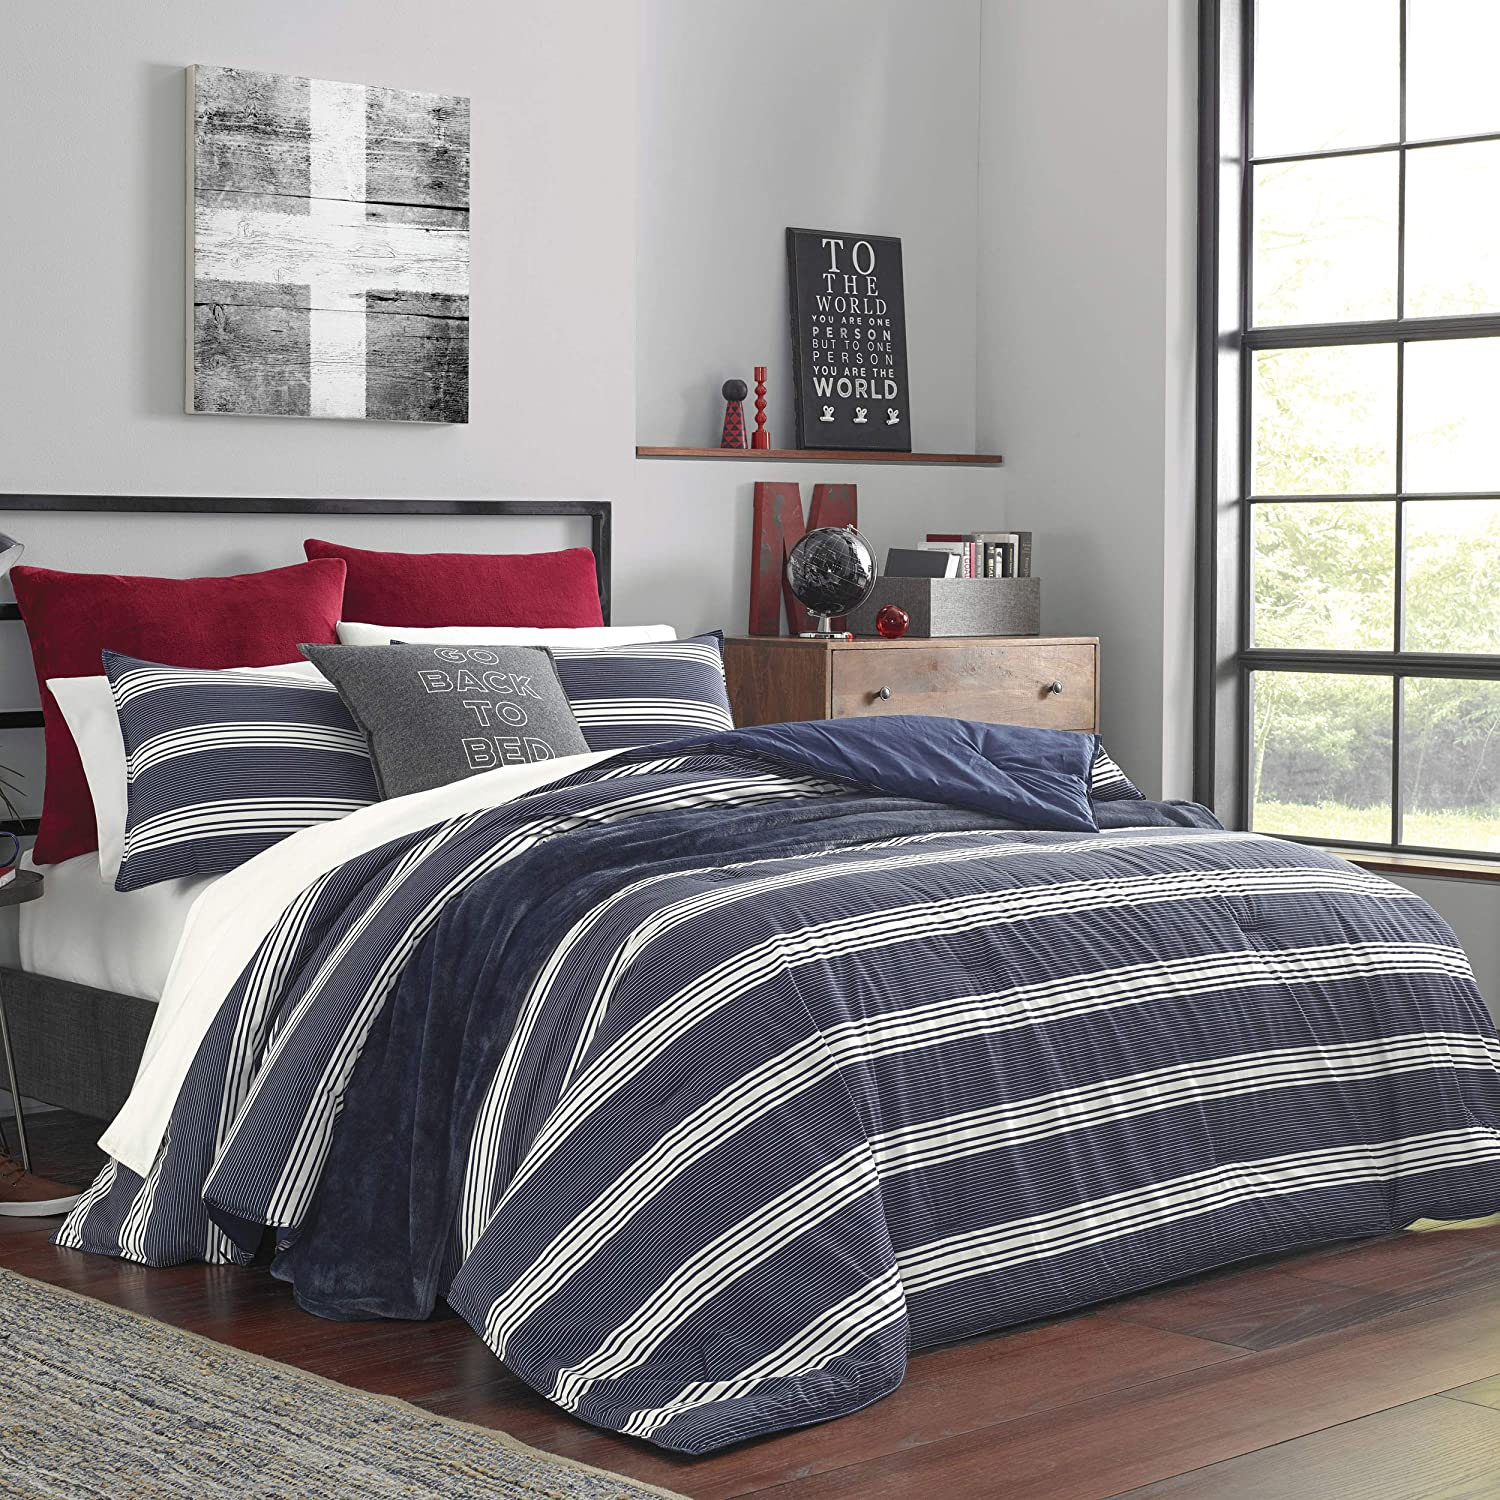 Nautica Craver Comforter Set, Queen, Navy